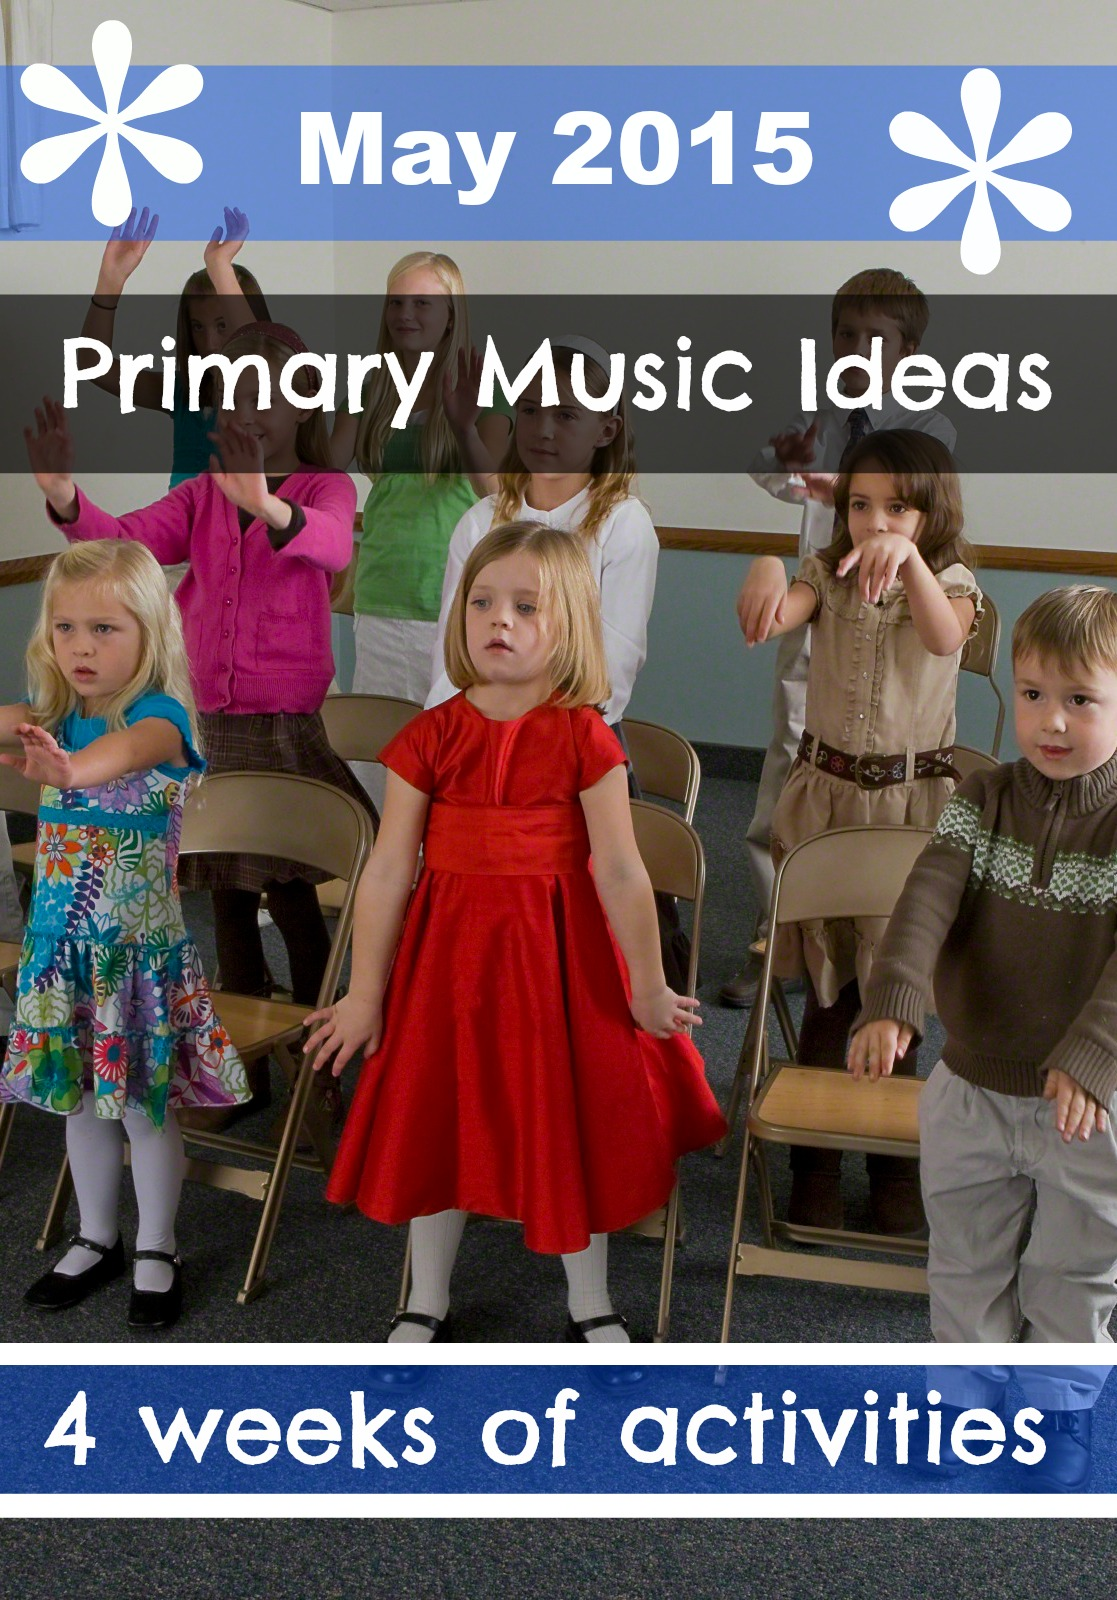 May – 4 weeks of Primary Music Activity Ideas: Younger